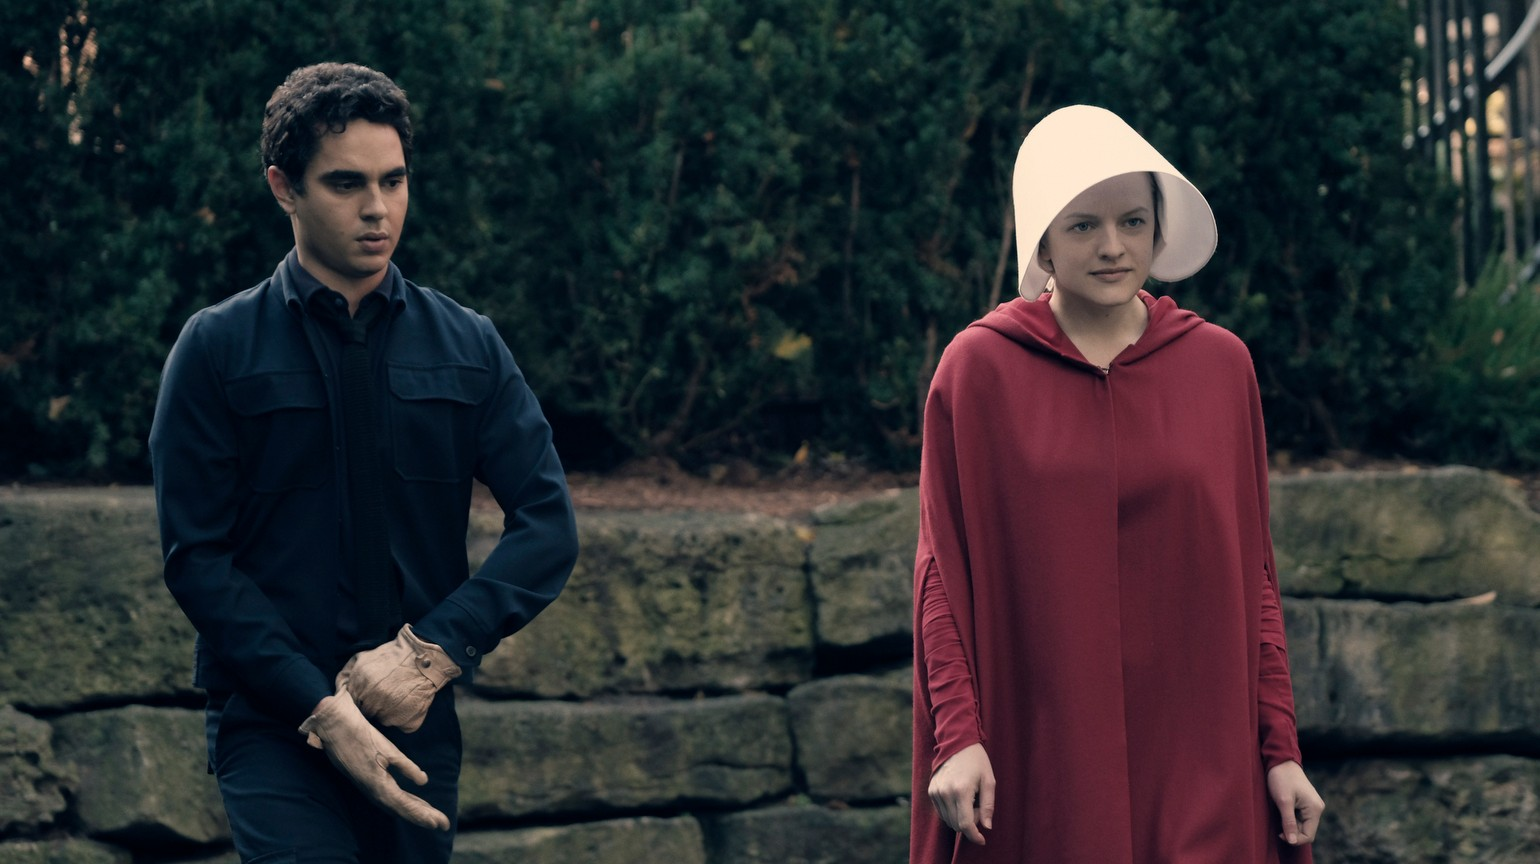 secret daughter and the handmaid's tale A detailed description of the handmaid's tale characters and their importance ofglen tells offred she belongs to a secret offred's daughter.